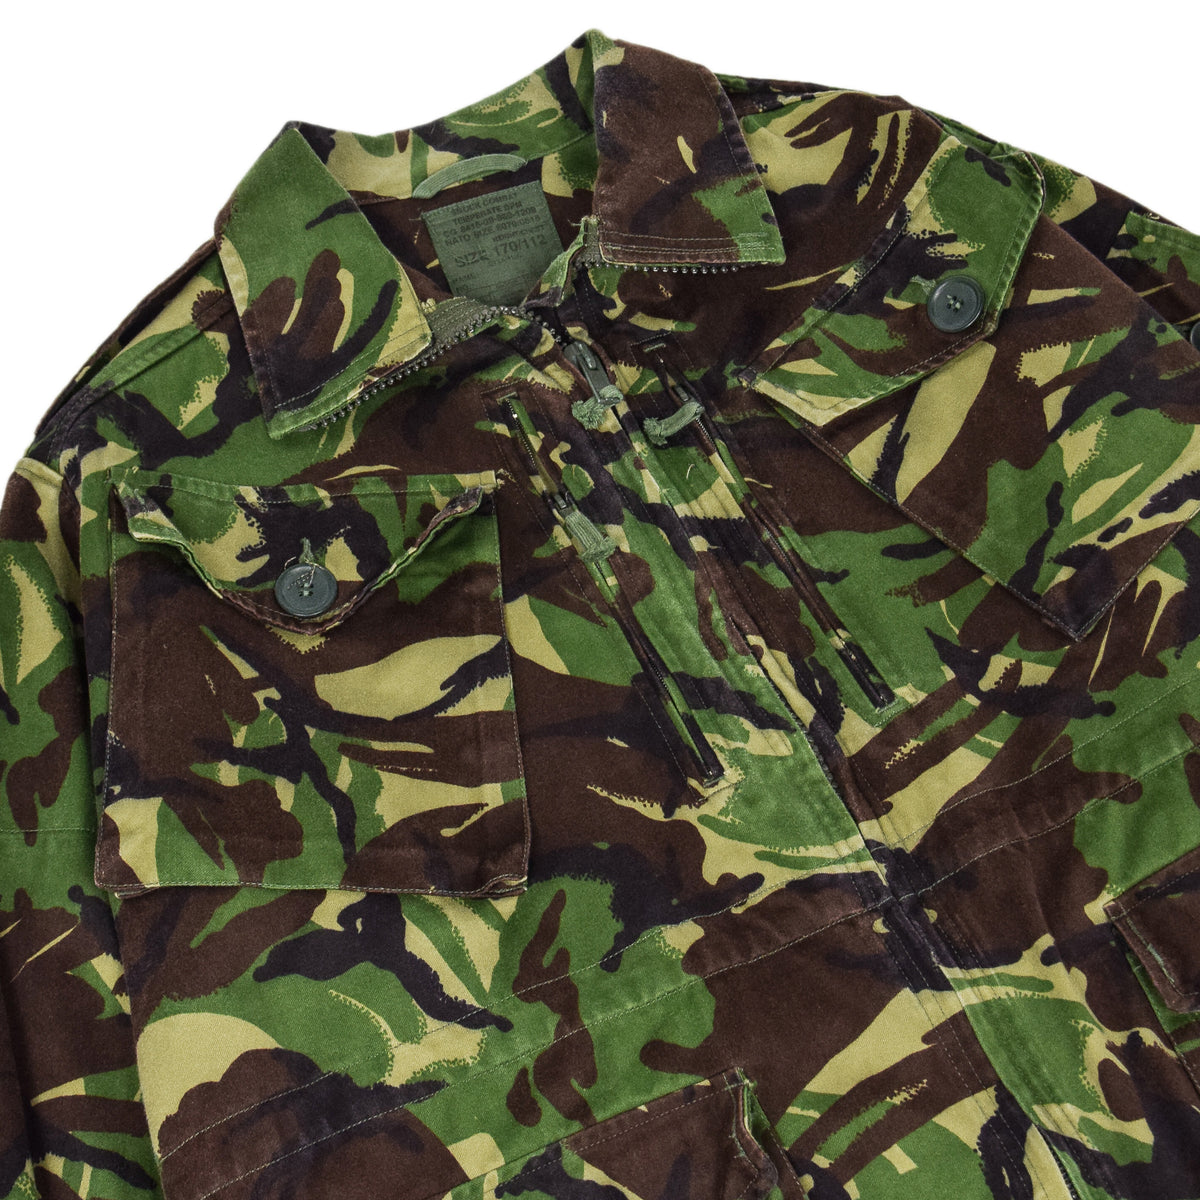 Vintage 90s British Army Combat Smock Temperate Woodland DPM Camo Jacket L chest